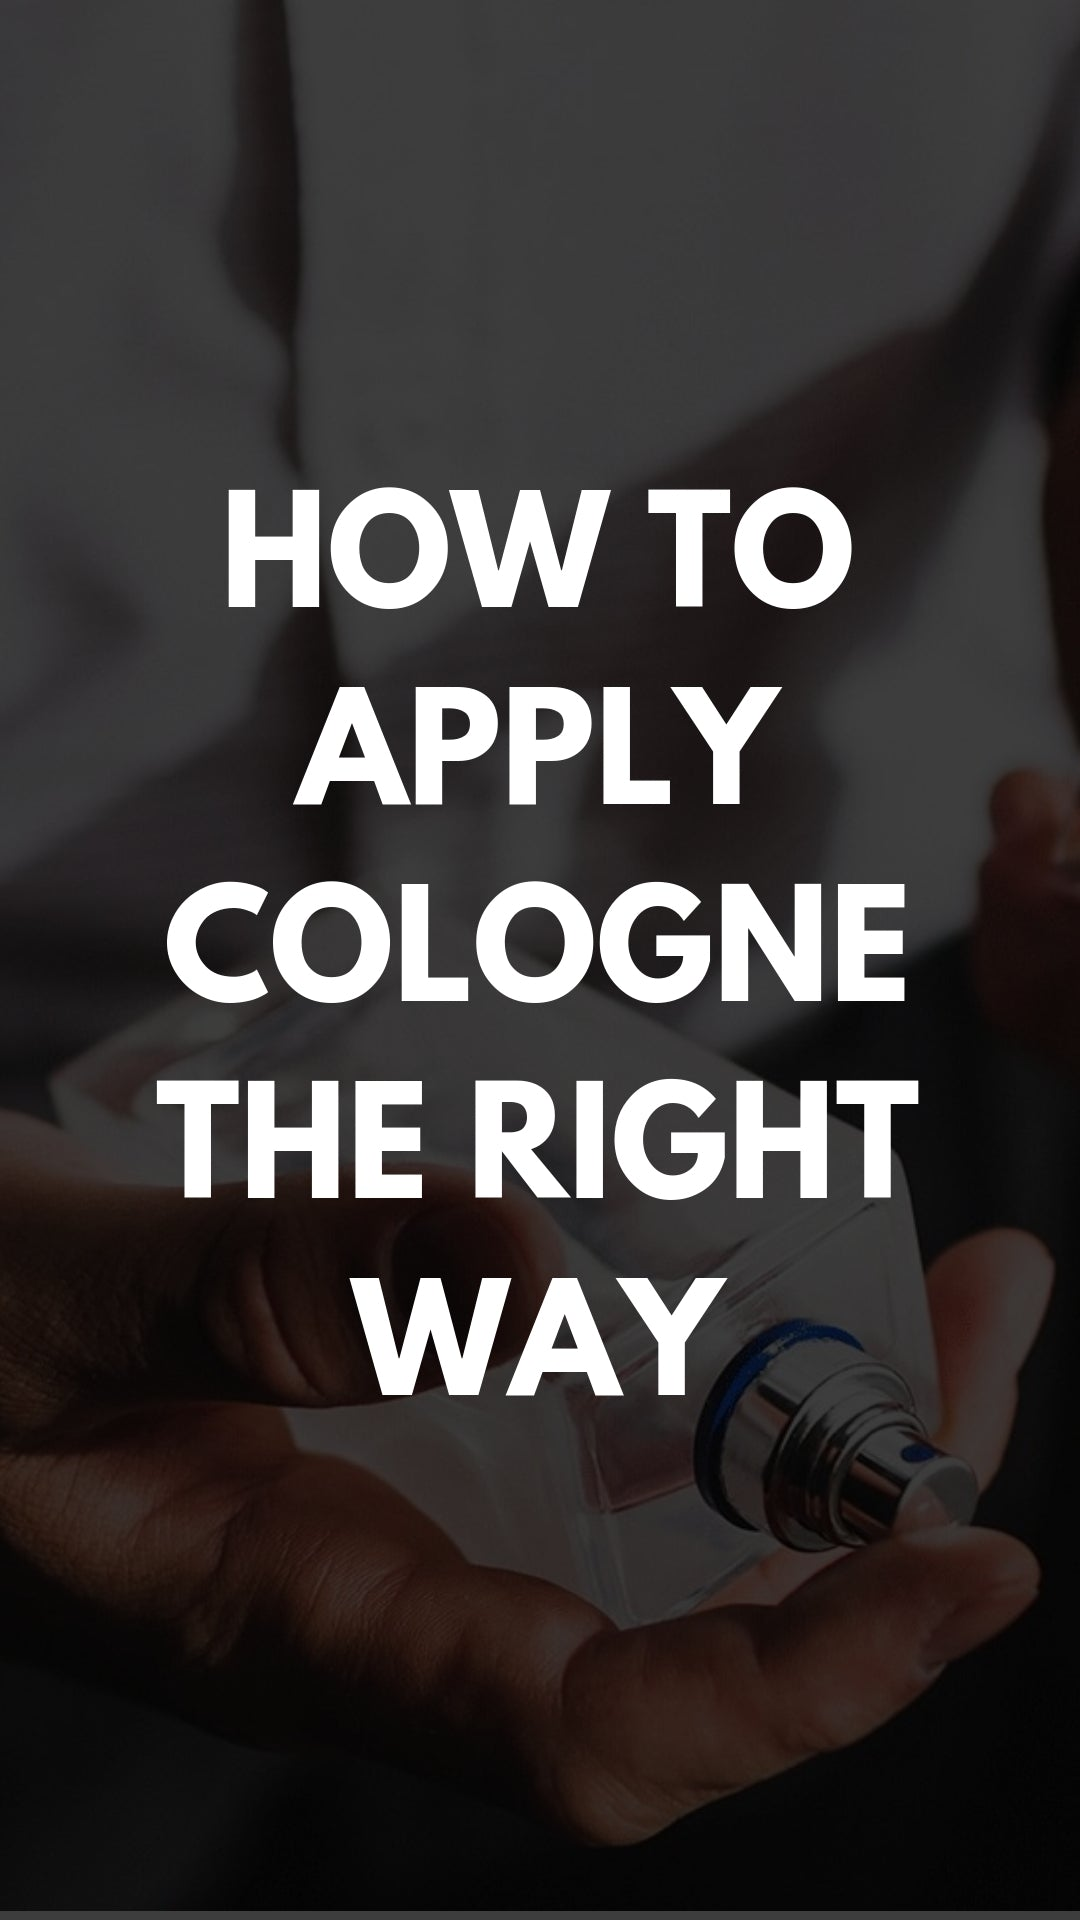 How to Apply Cologne The Right Way